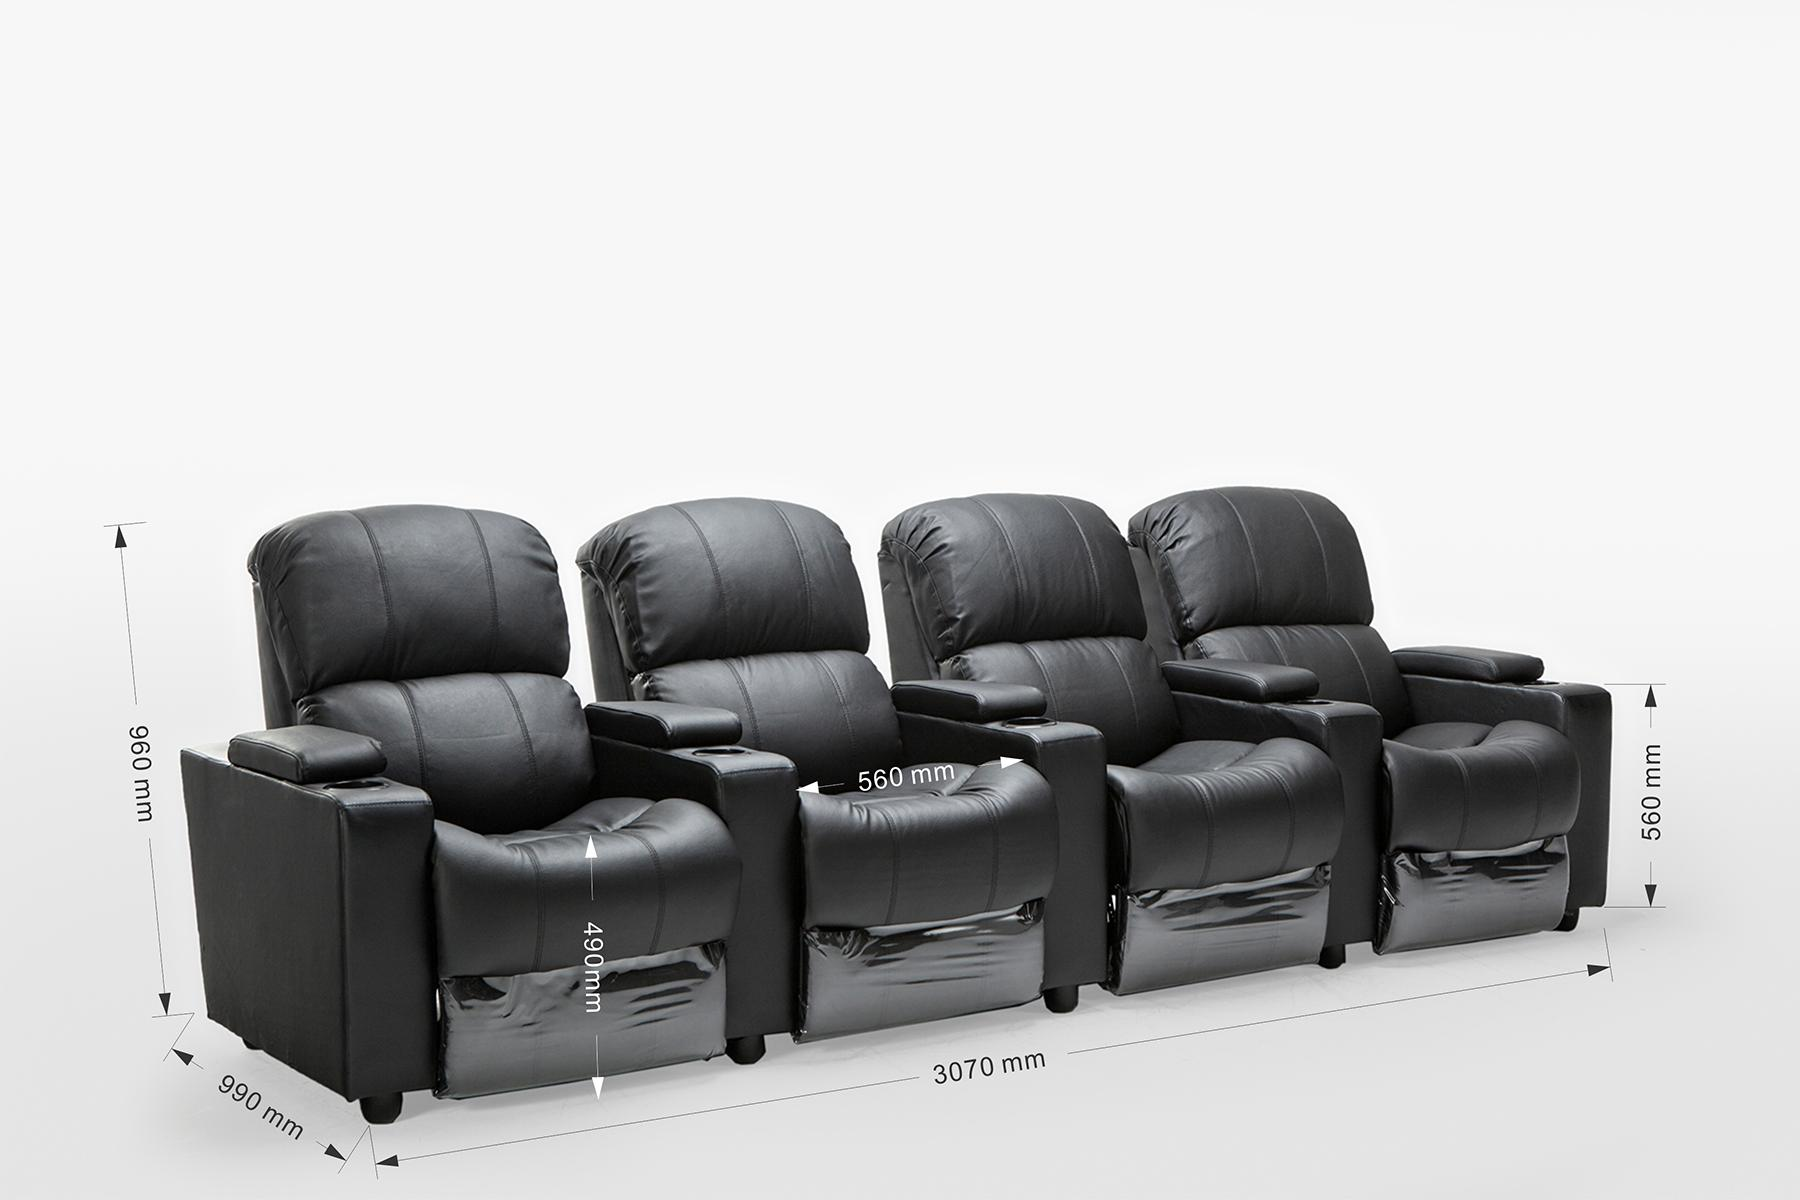 Gentil Sophie Leather 4 Seater Home Theatre Recliner Sofa Lounge With Cup Holders  | EBay